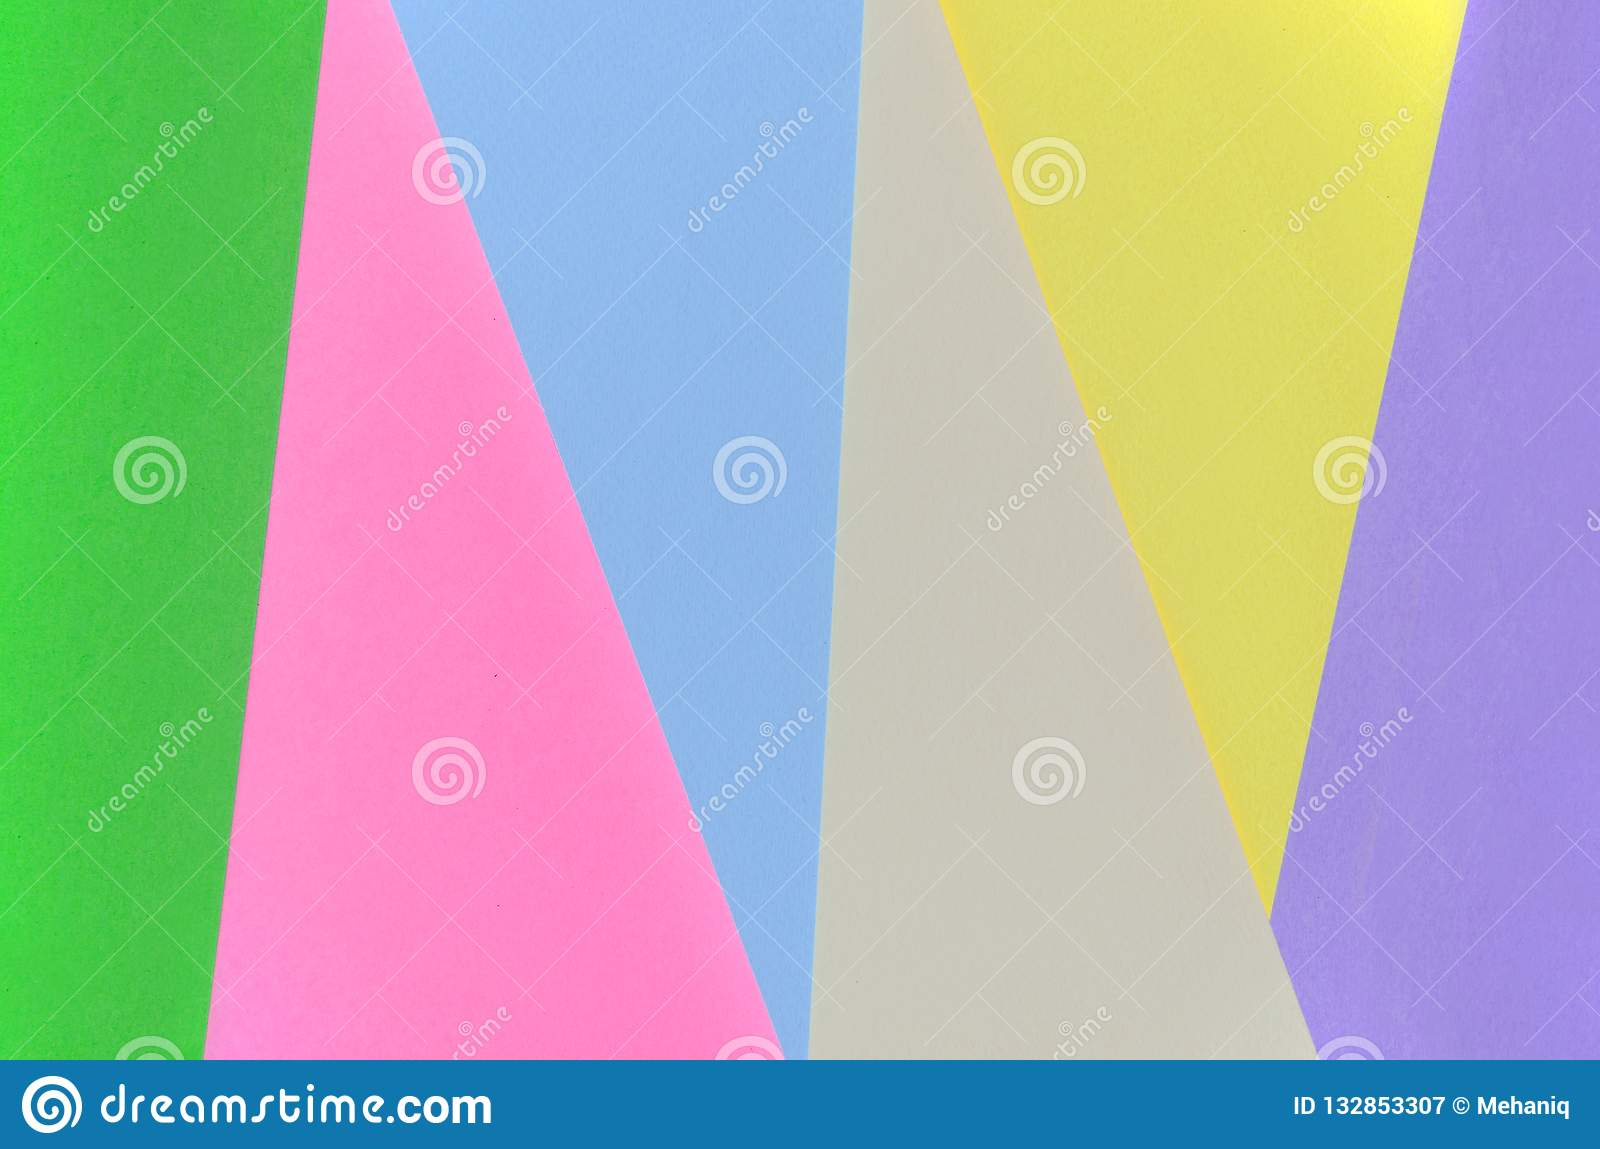 Texture background of fashion pastel colors. Pink, violet, yellow, green, beige and blue geometric pattern papers. minimal